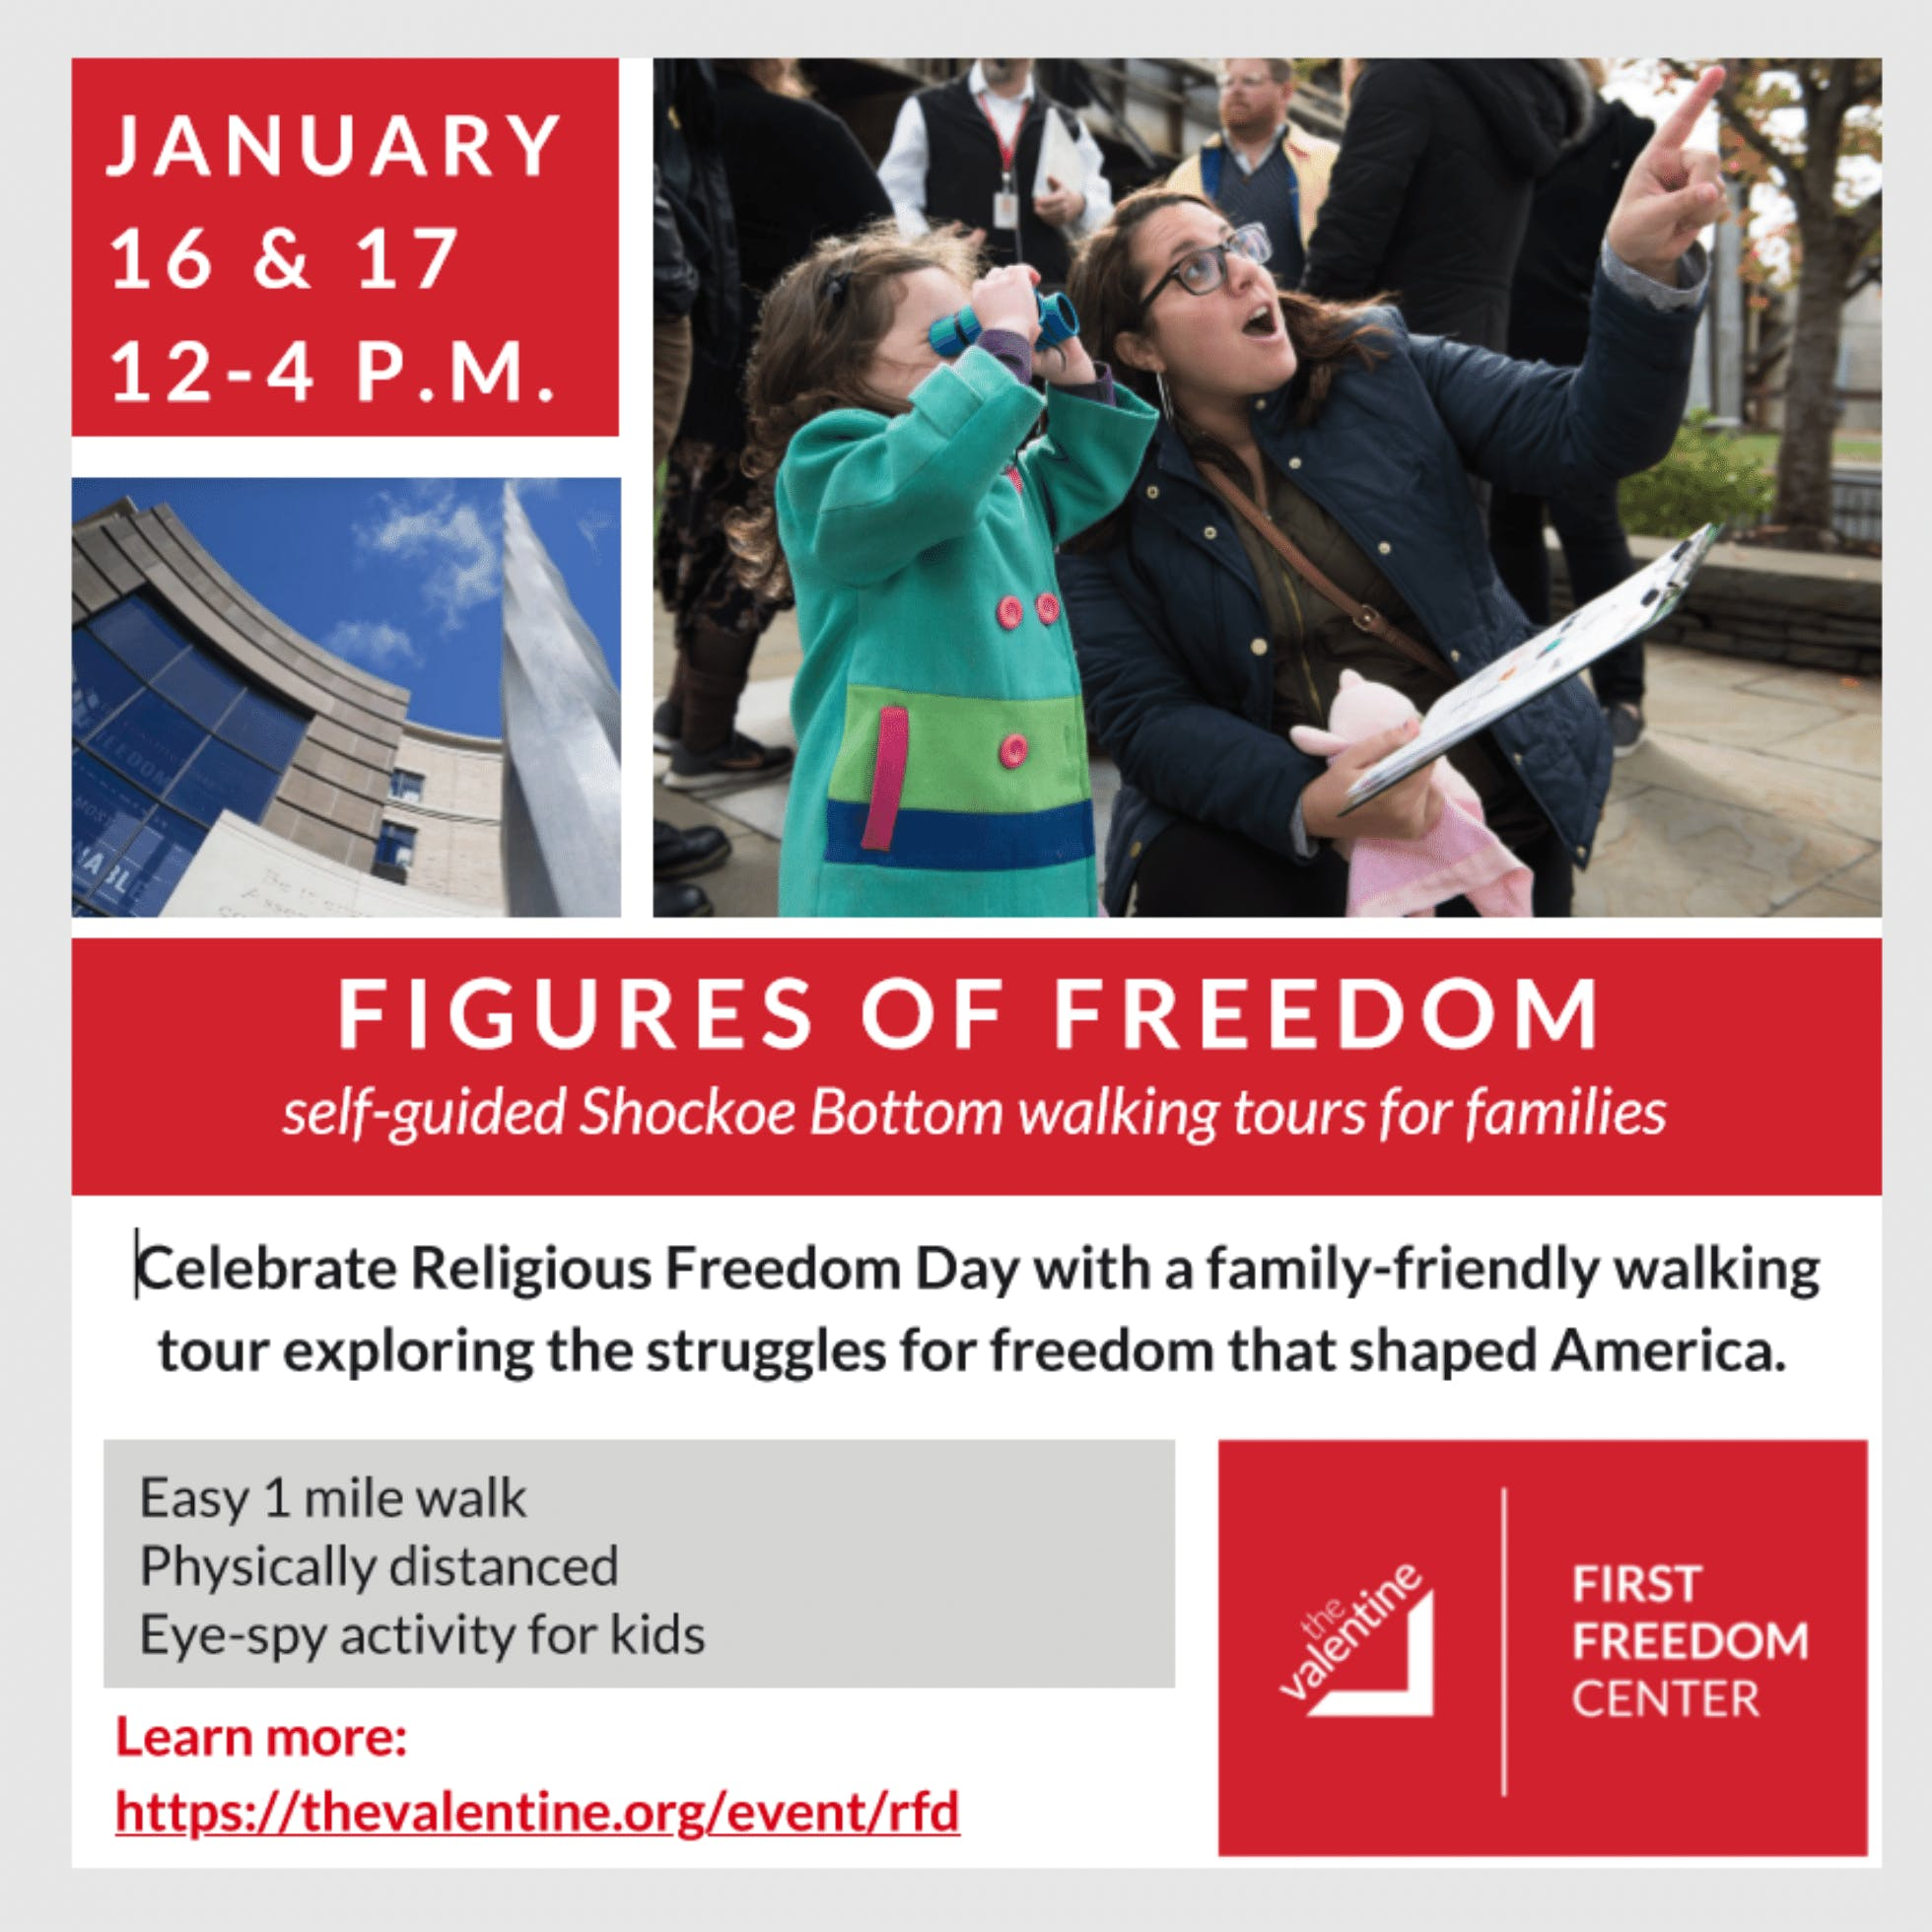 Religious Freedom Day Self-Guided Walking Tour